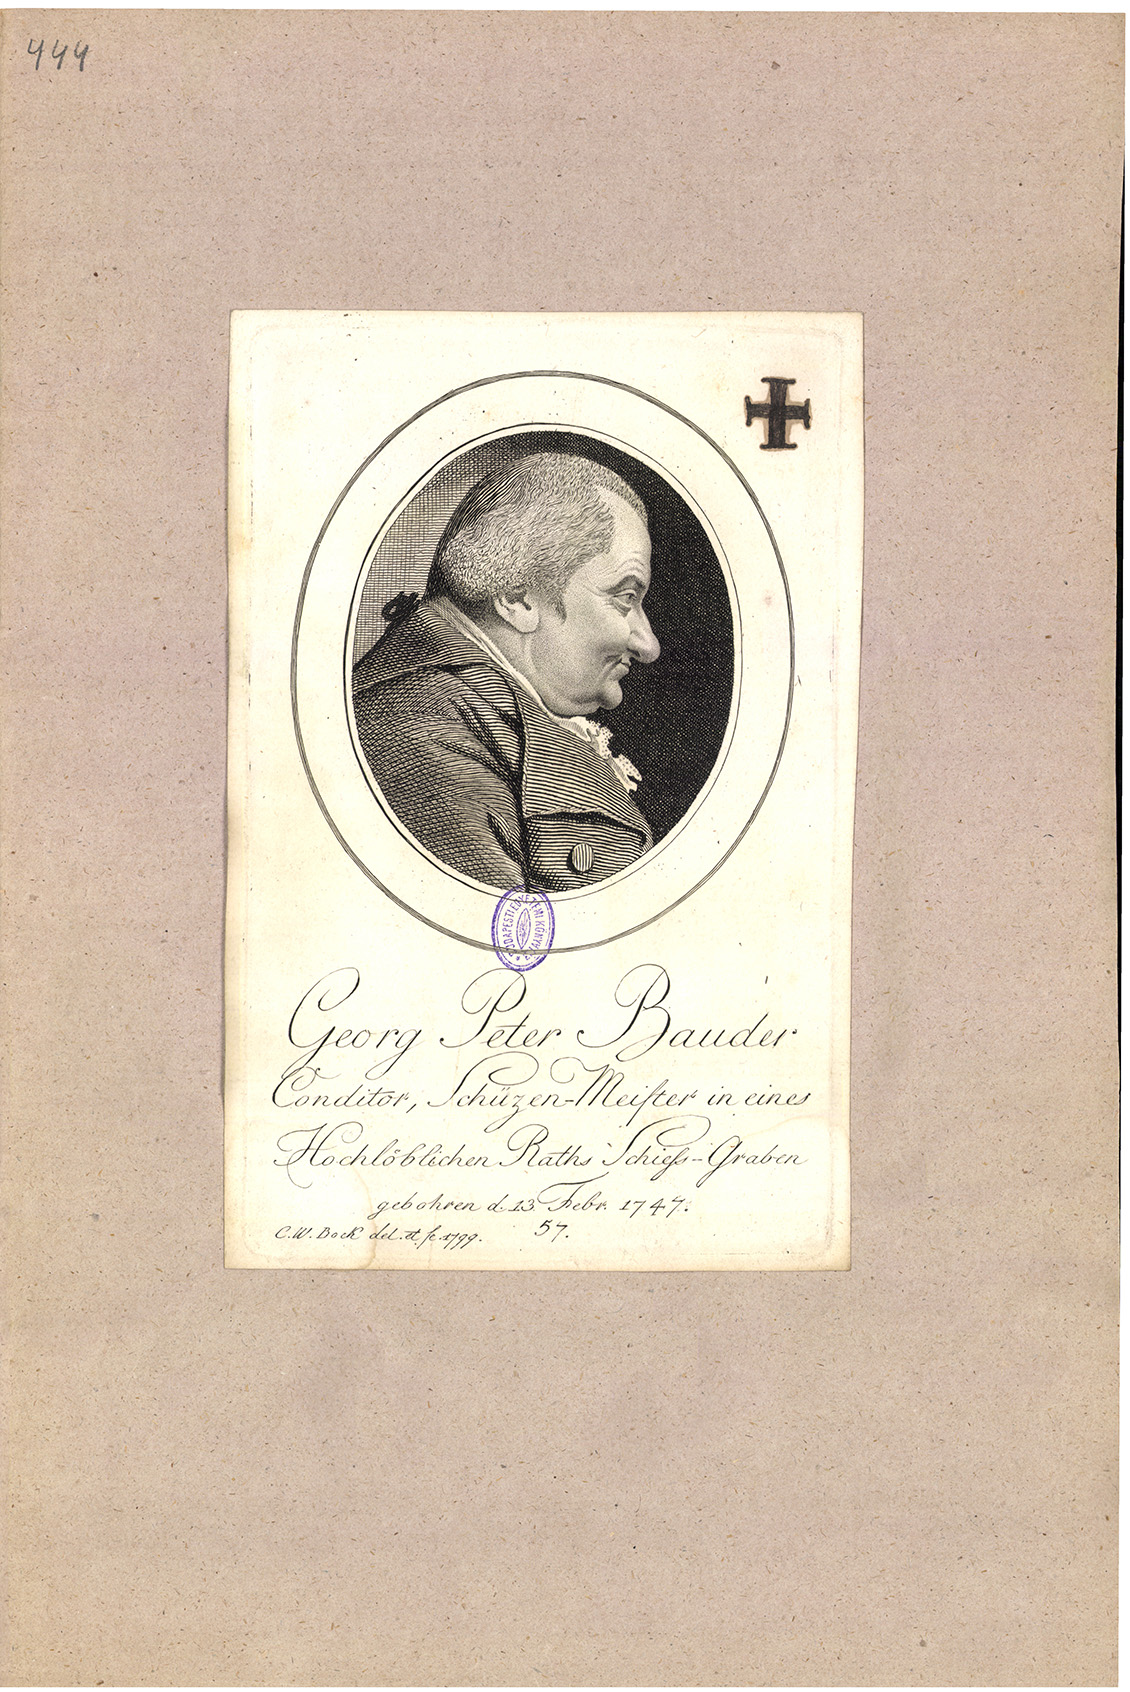 Georg Peter Bauder